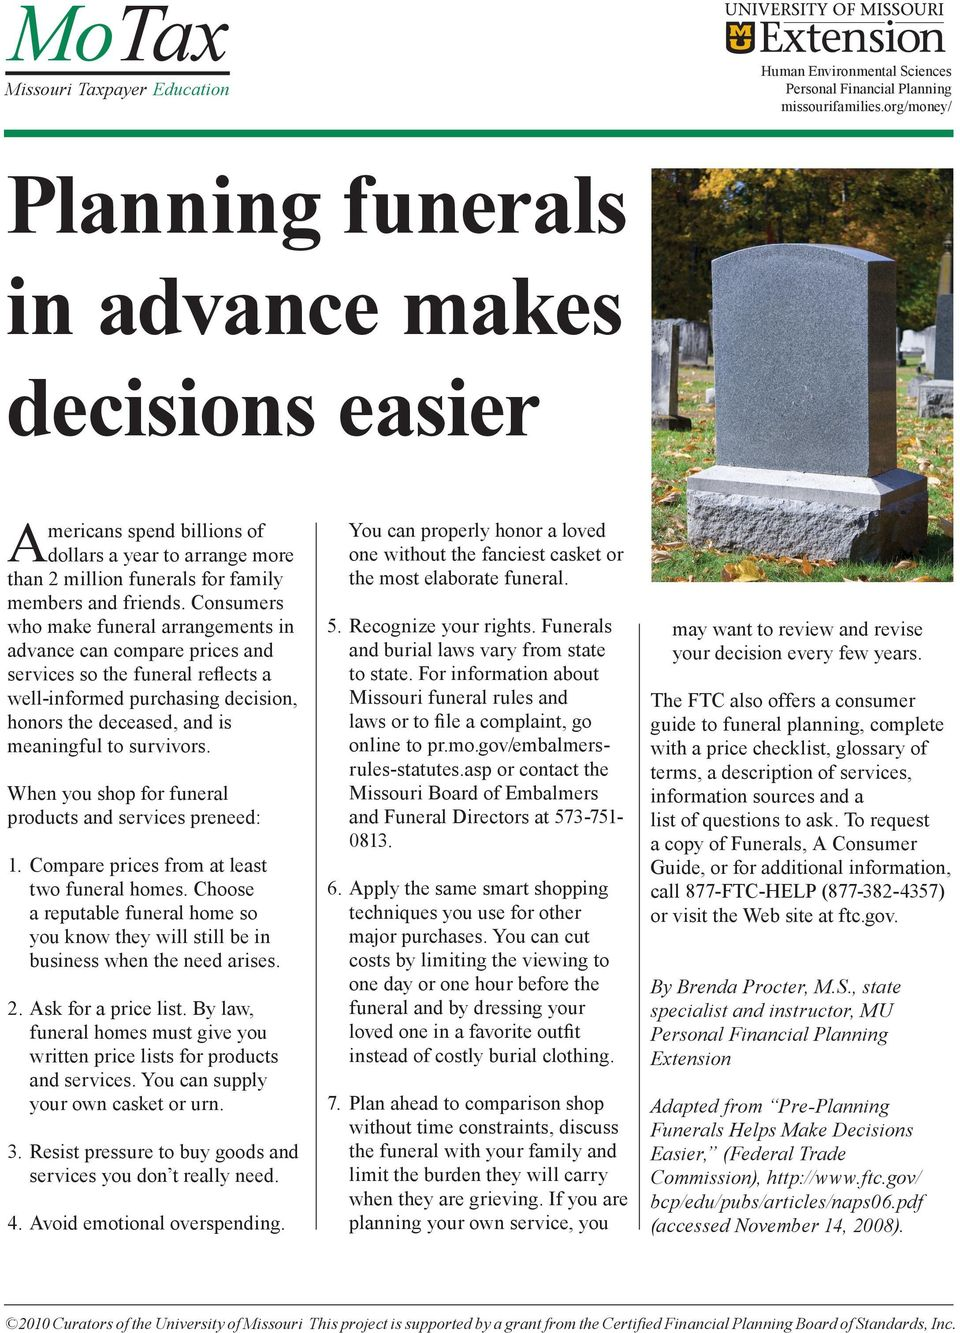 Consumers who make funeral arrangements in advance can compare prices and services so the funeral reflects a well-informed purchasing decision, honors the deceased, and is meaningful to survivors.